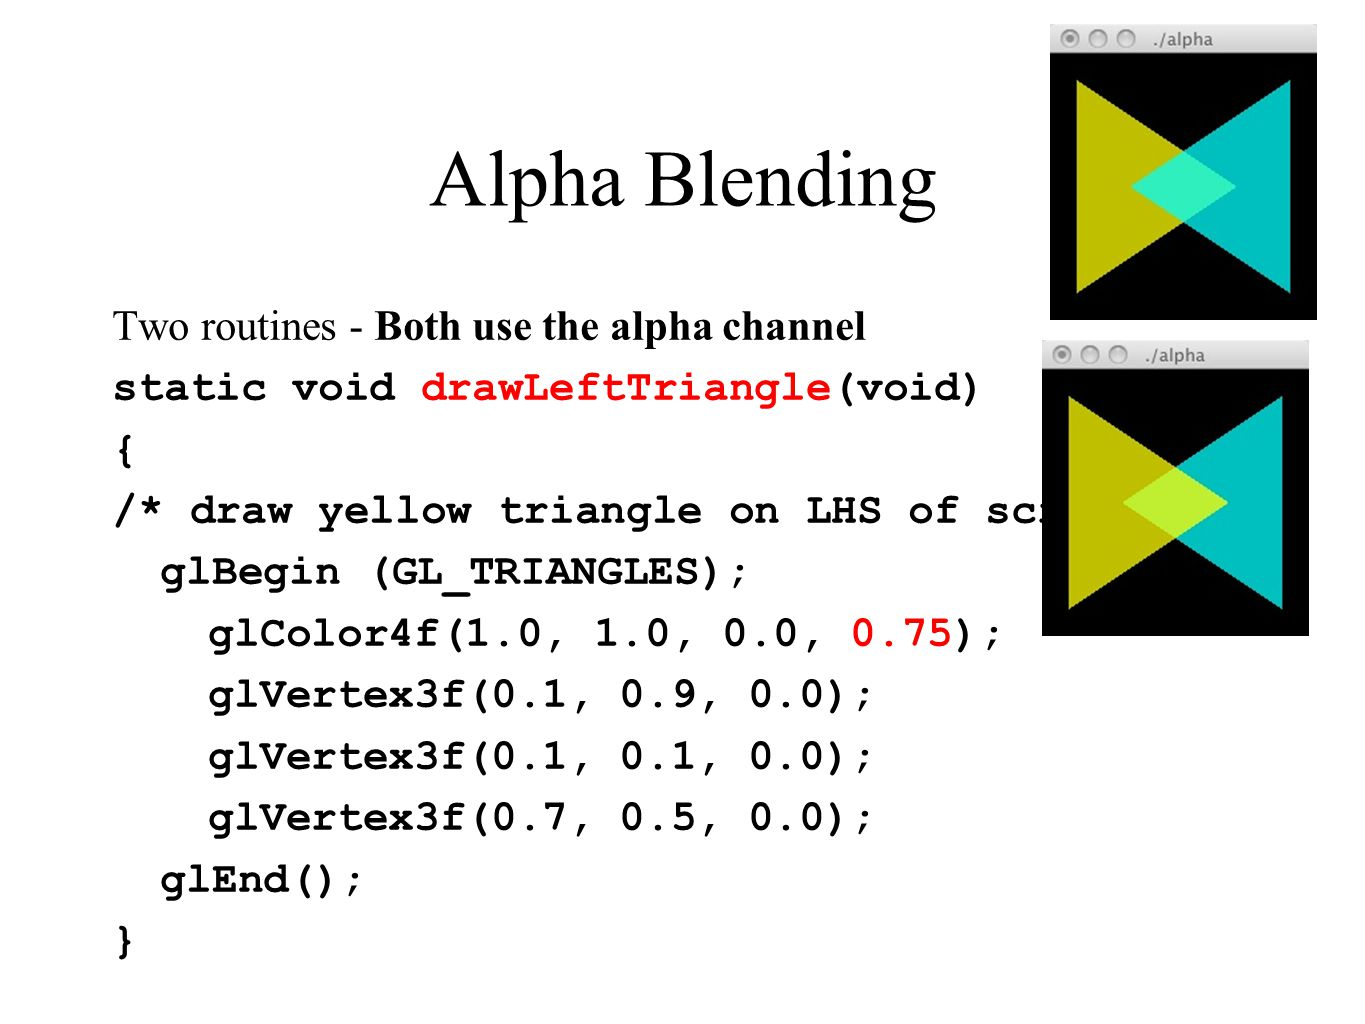 Alpha Blending Two routines - Both use the alpha channel static void drawLeftTriangle(void) { /* draw yellow triangle on LHS of screen */ glBegin (GL_